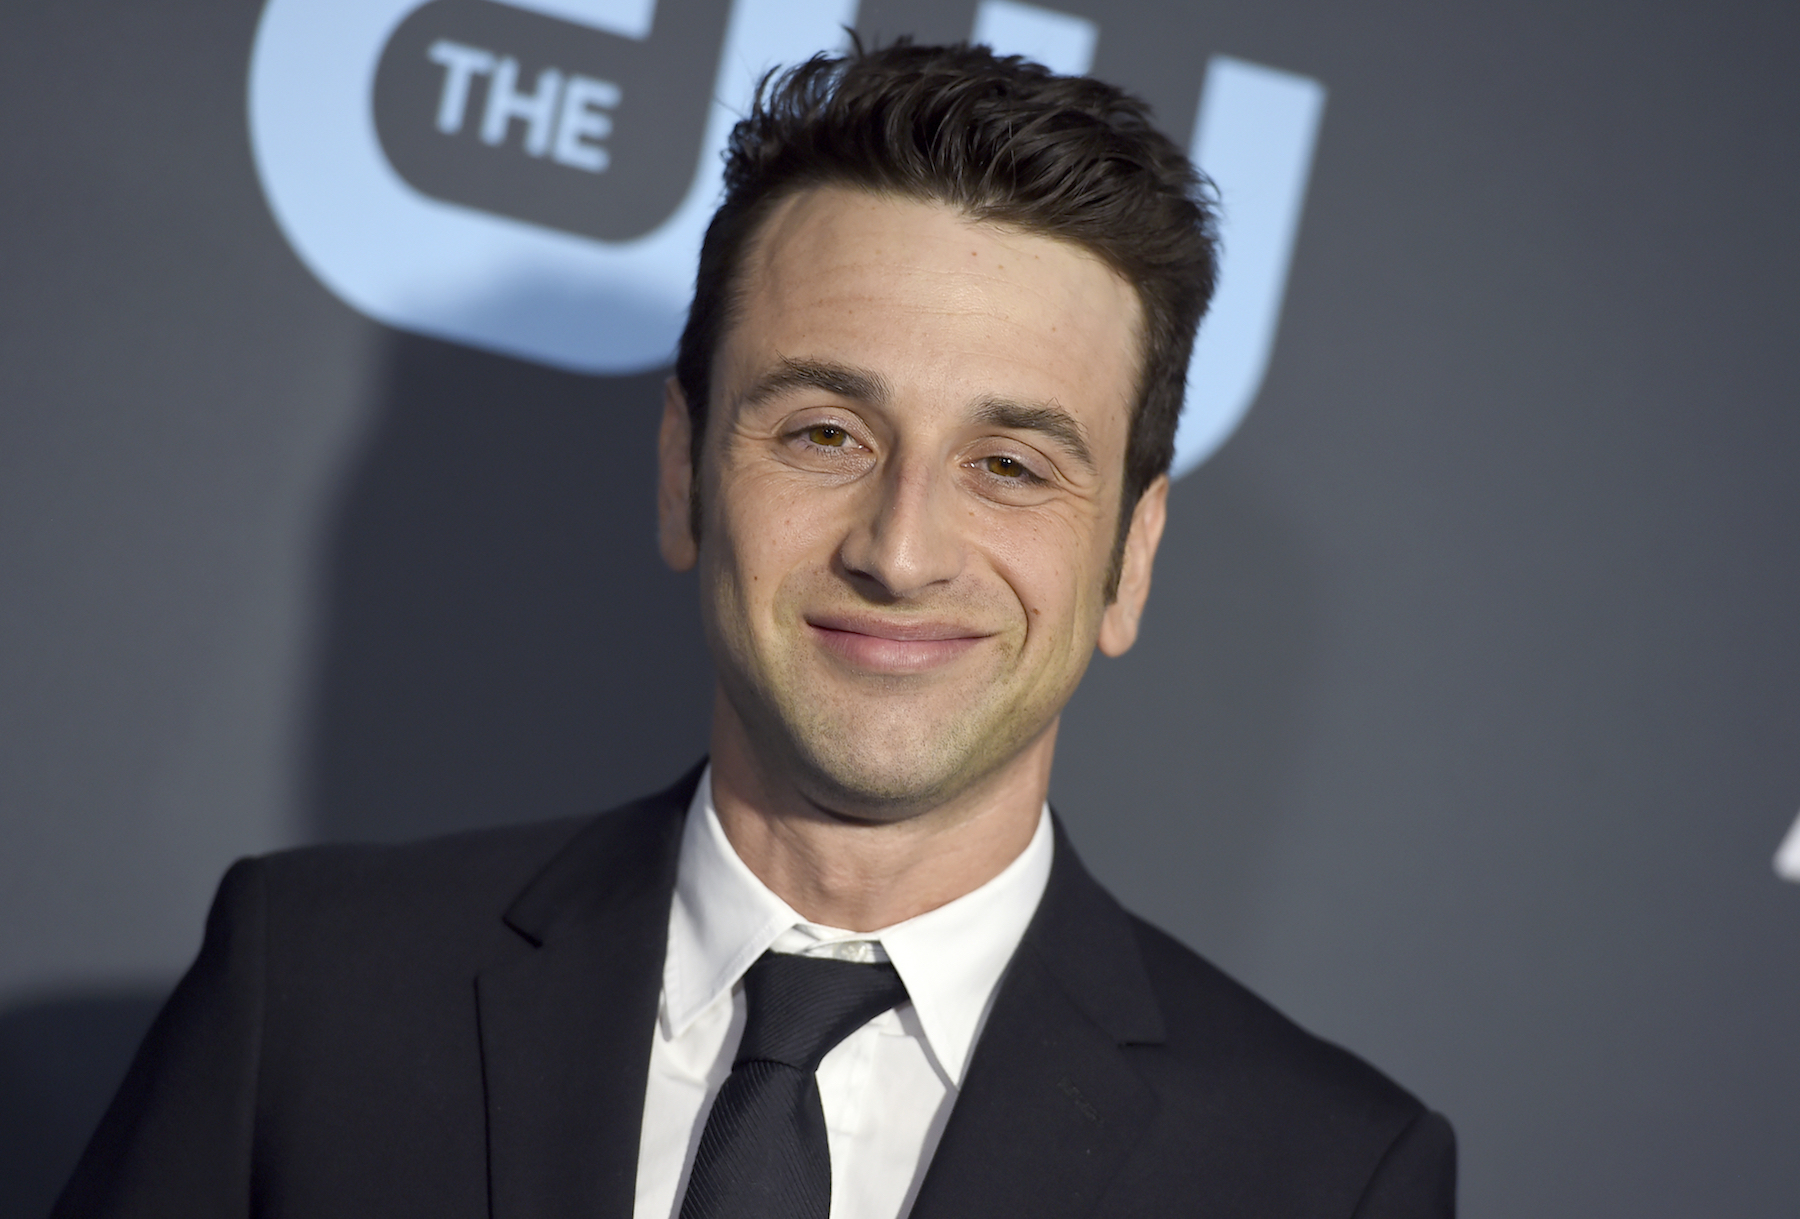 "<div class=""meta image-caption""><div class=""origin-logo origin-image ap""><span>AP</span></div><span class=""caption-text"">Justin Hurwitz arrives at the 24th annual Critics' Choice Awards on Sunday, Jan. 13, 2019, at the Barker Hangar in Santa Monica, Calif. (Jordan Strauss/Invision/AP)</span></div>"